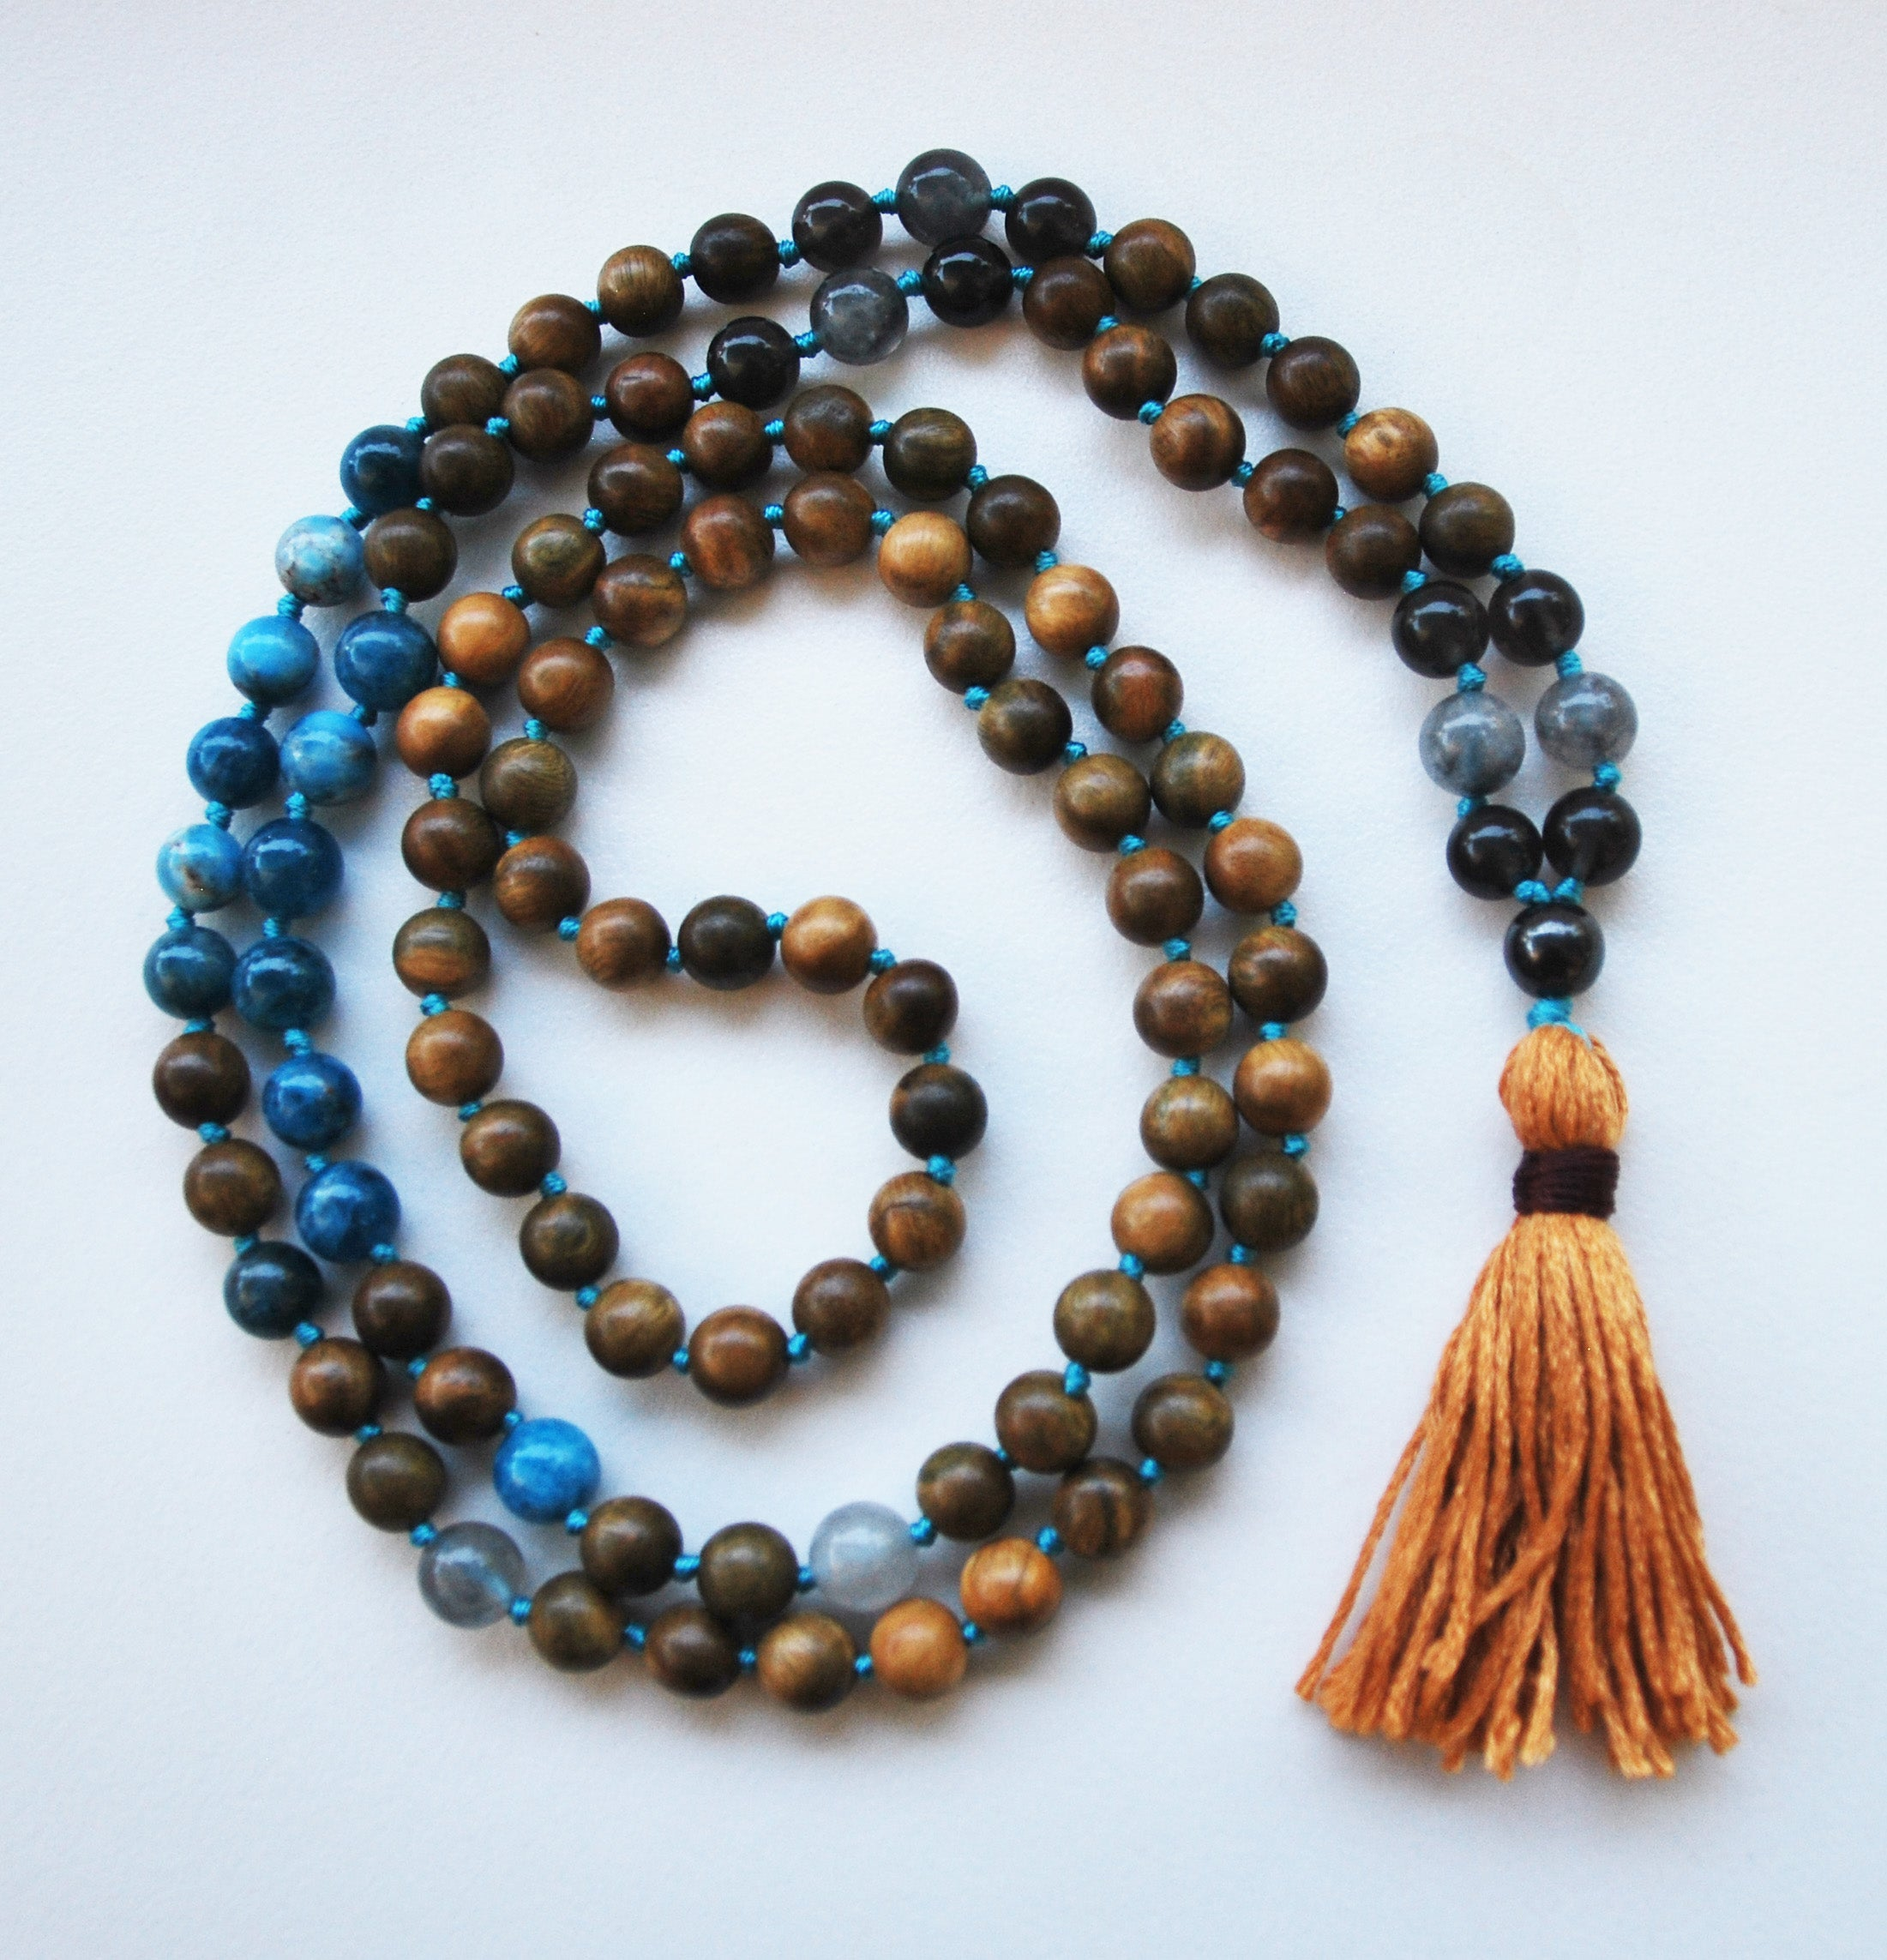 8mm Green Sandalwood & Apatite 108 Knotted Mala Necklace with Cotton Tassel